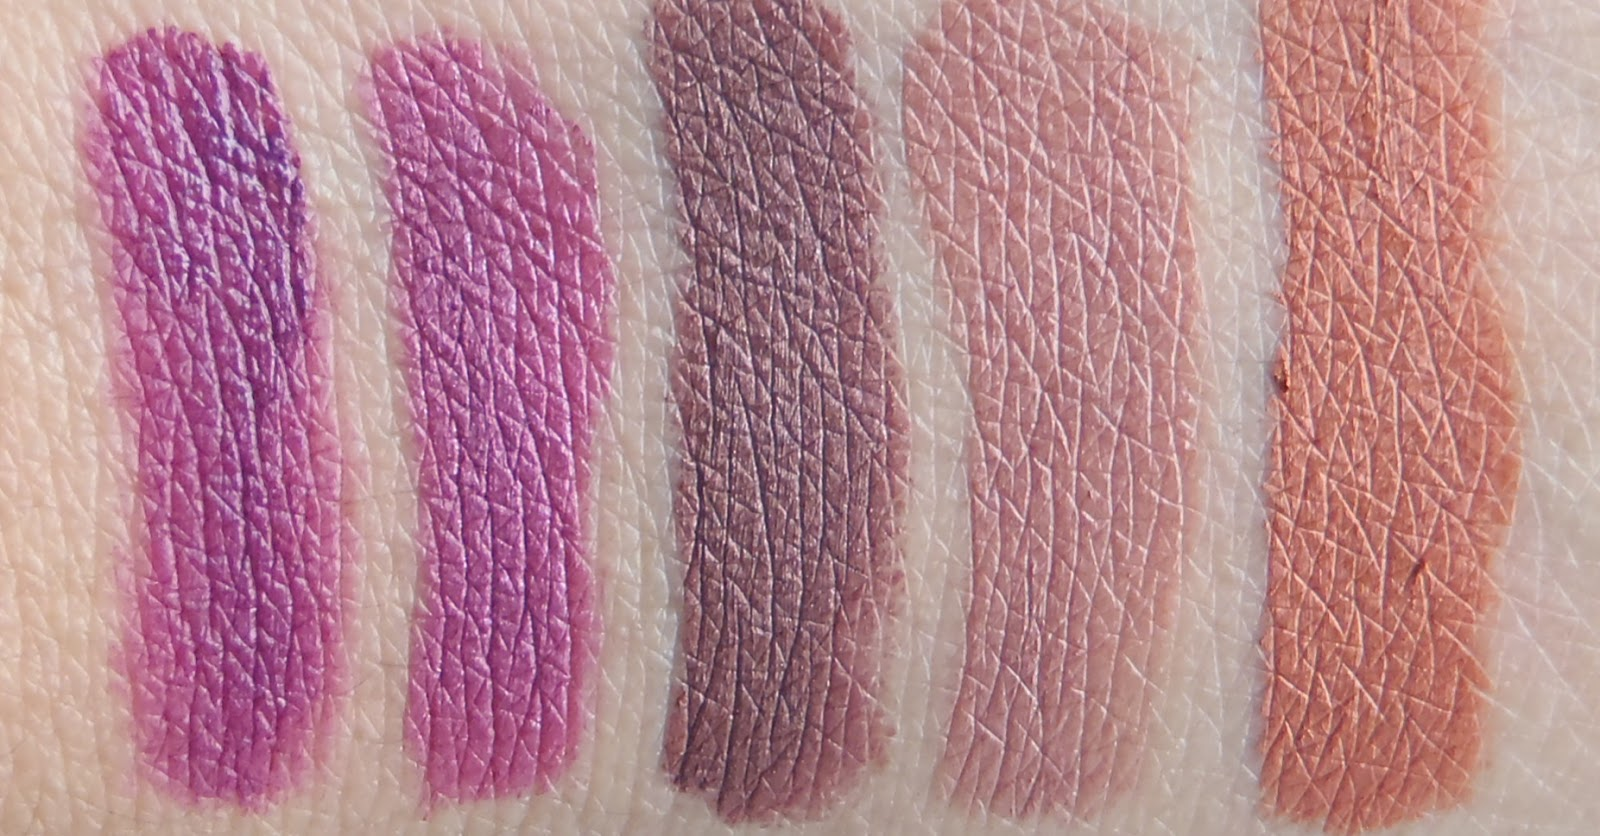 Sparkled Beauty: OFRA long lasting liquid lipsticks